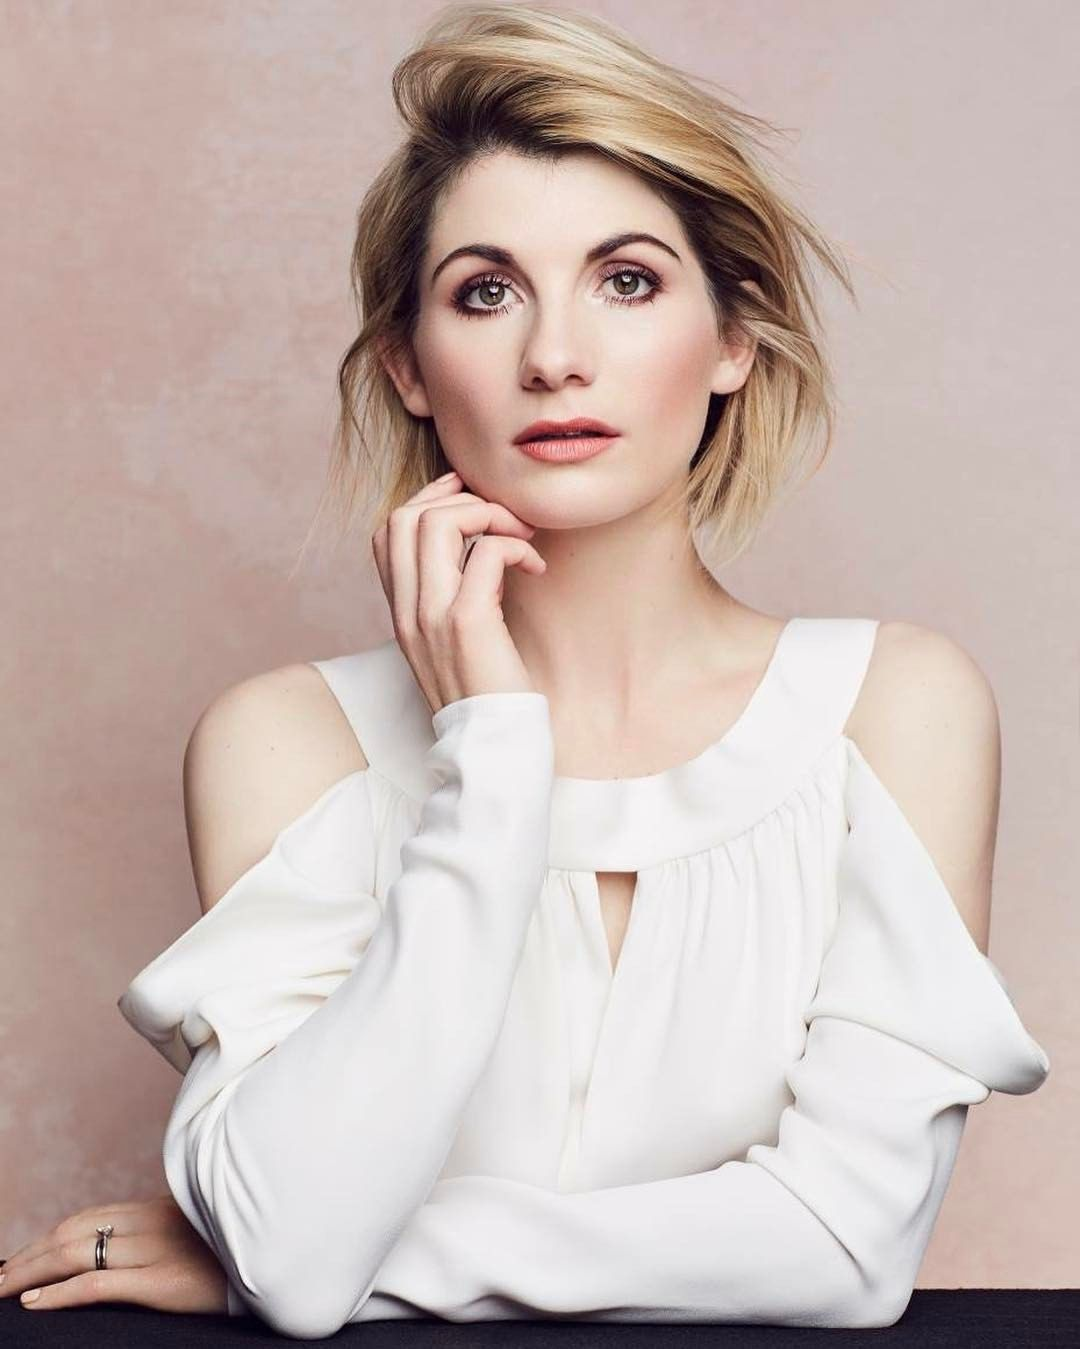 Hot Jodie Whittaker nude (39 photos), Topless, Paparazzi, Boobs, legs 2017